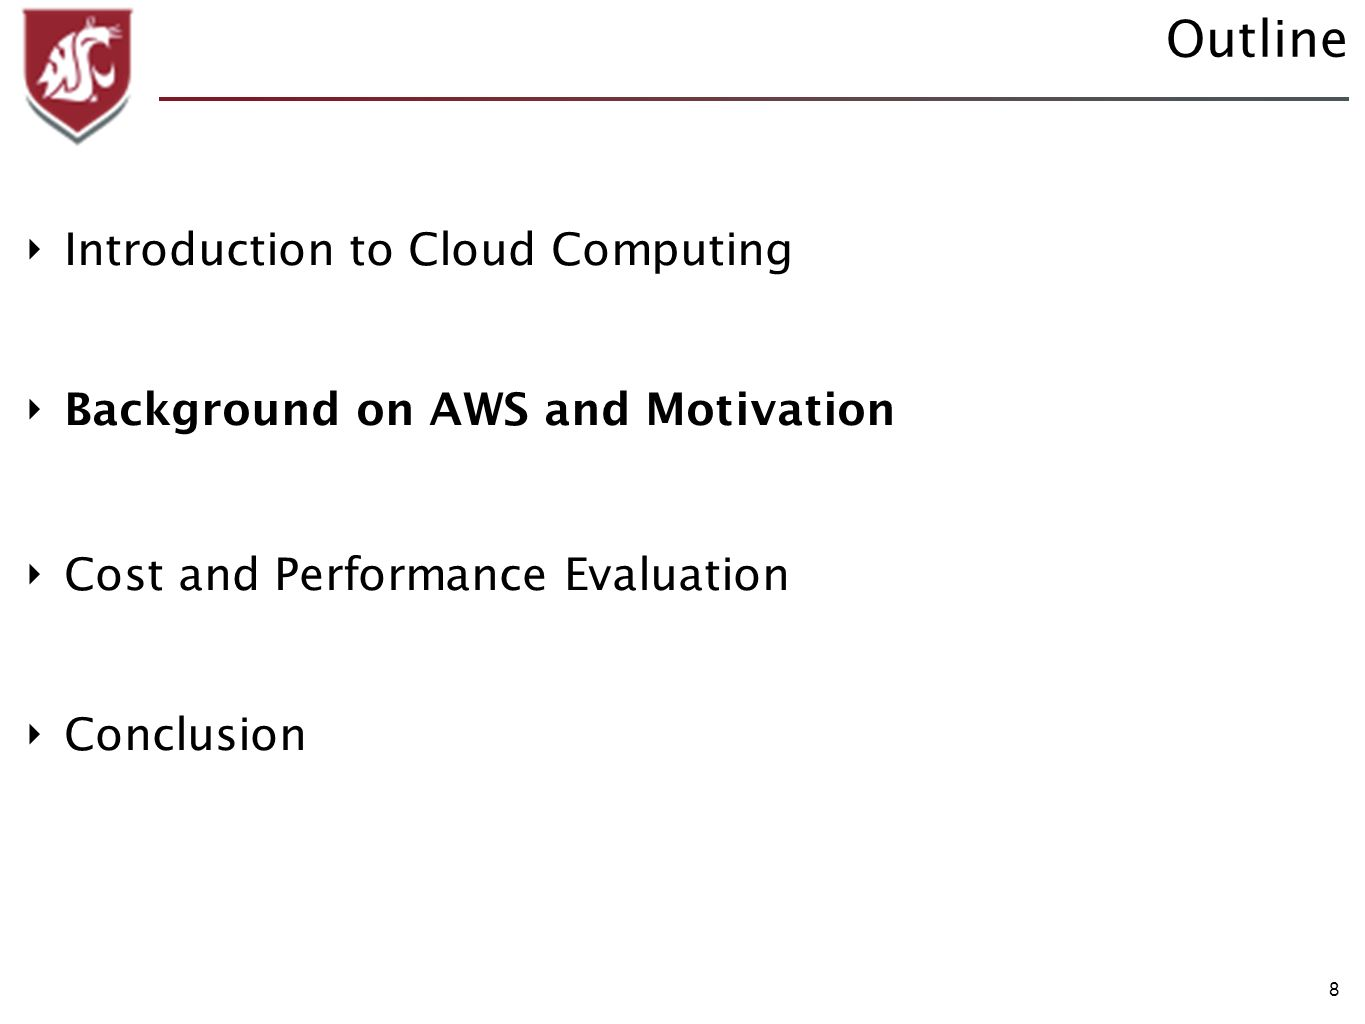 8 Outline Introduction to Cloud Computing Background on AWS and Motivation Cost and Performance Evaluation Conclusion